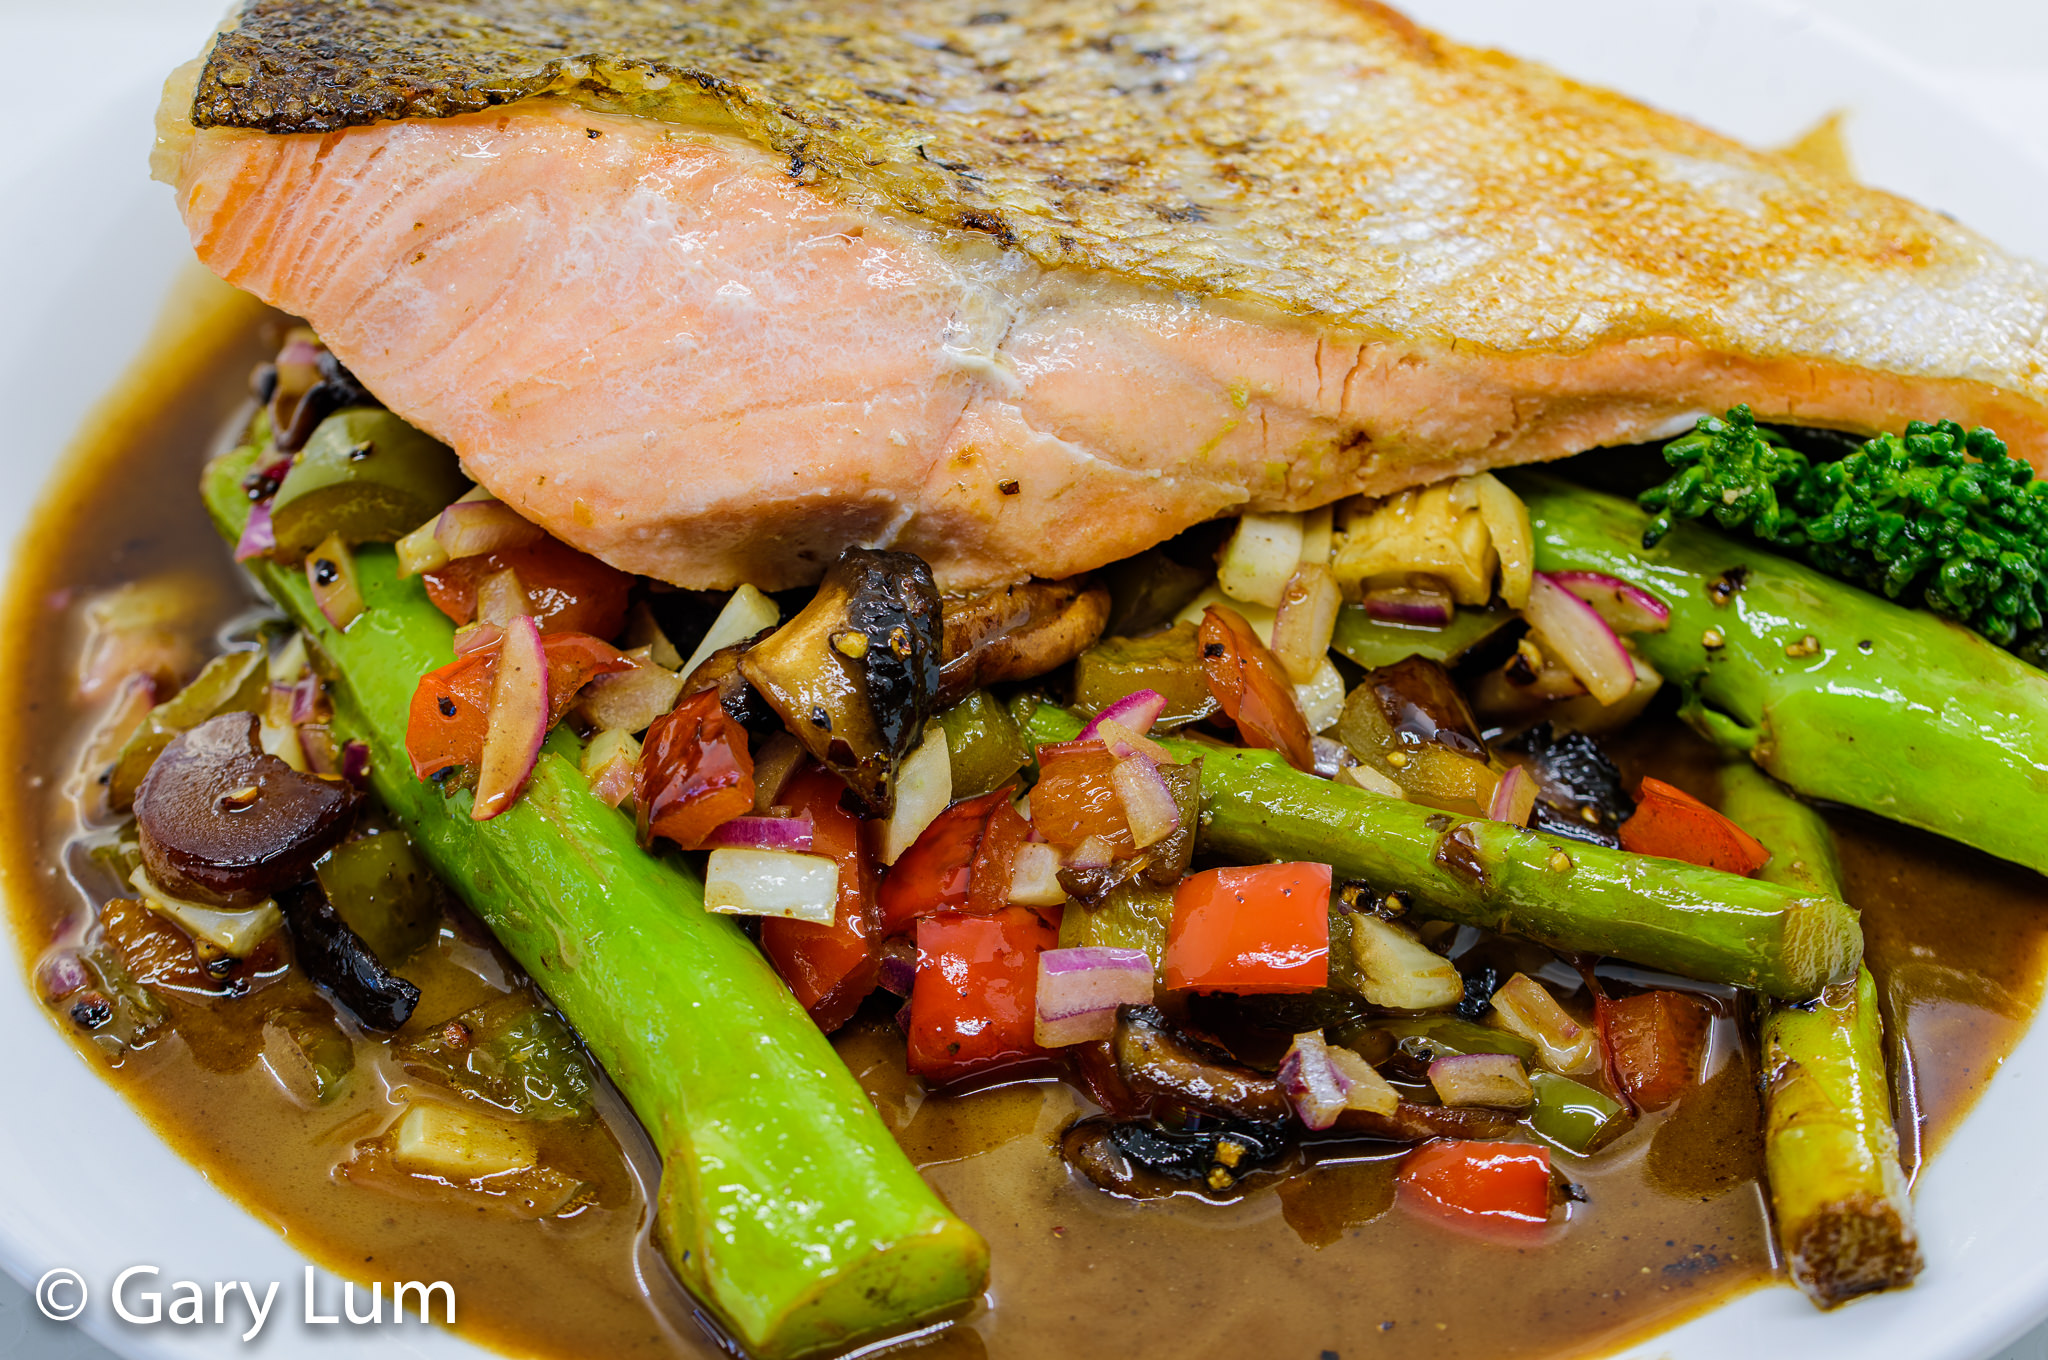 Close up. Pan-fried salmon with broccolini, asparagus, capsicum, red onion, fennel, and leftover gravy. Gary Lum.